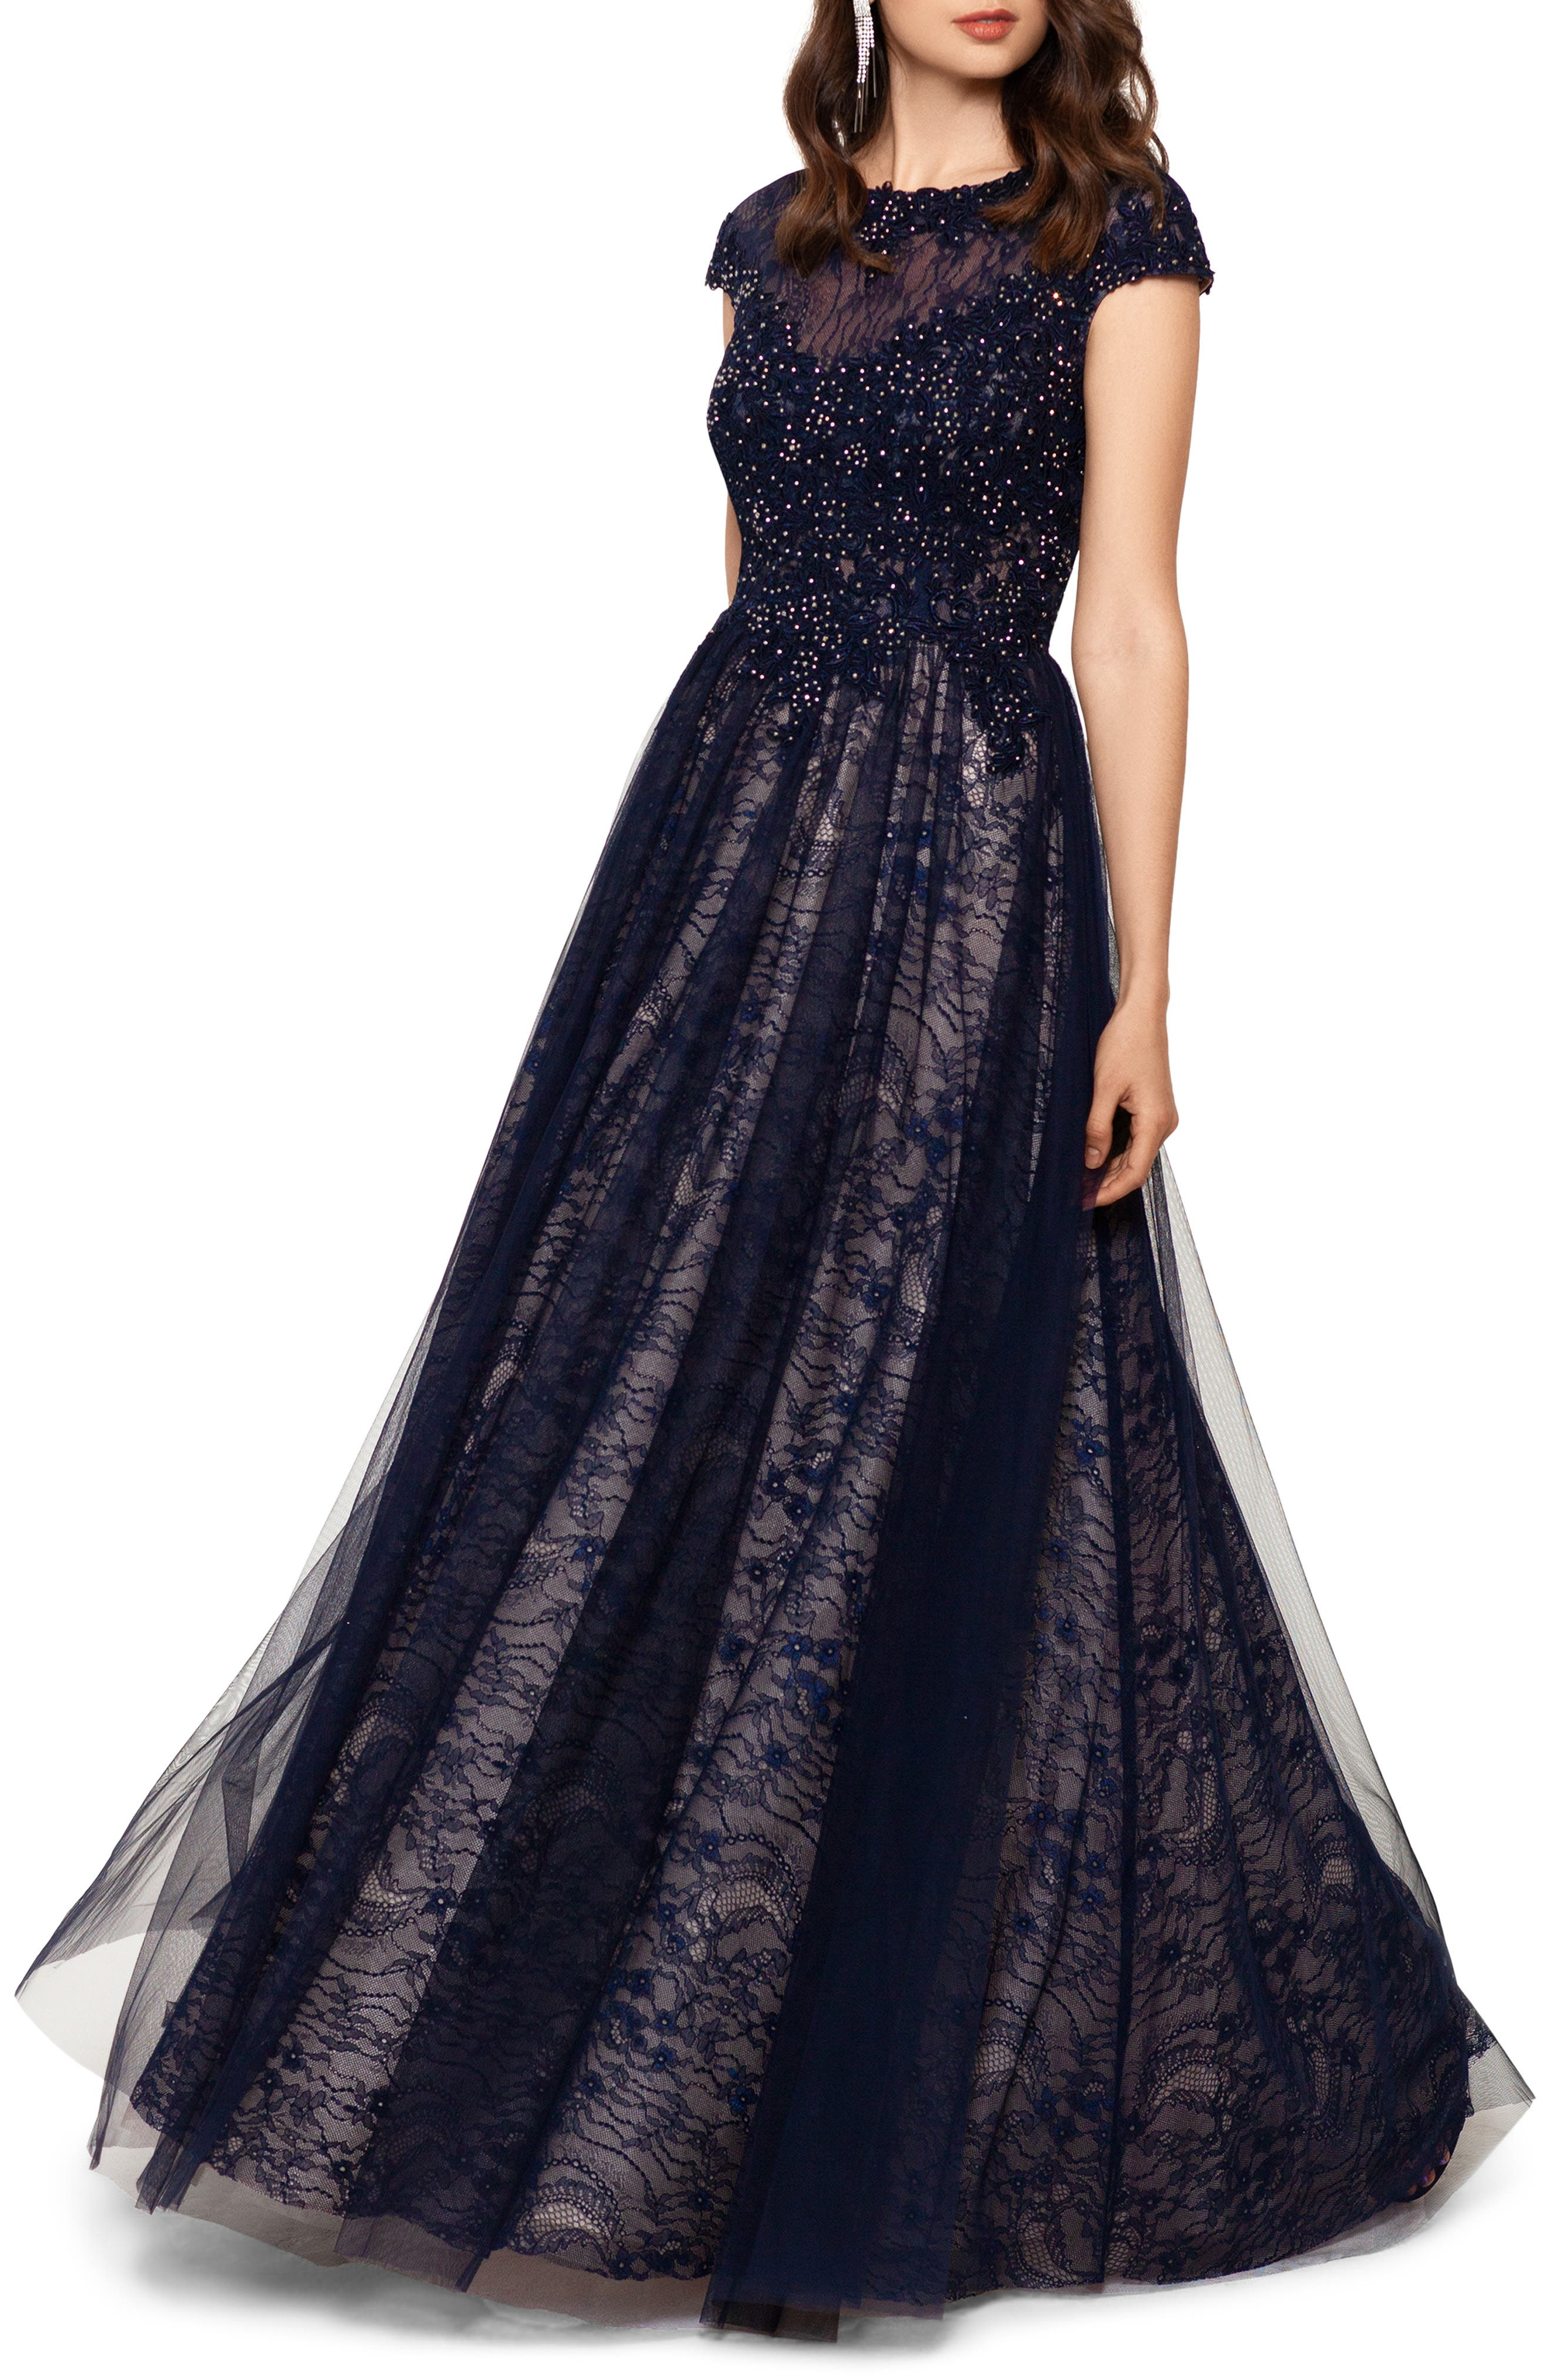 1940s Evening, Prom, Party, Formal, Ball Gowns Womens Xscape Lace Ballgown Size 8 - Blue $288.00 AT vintagedancer.com